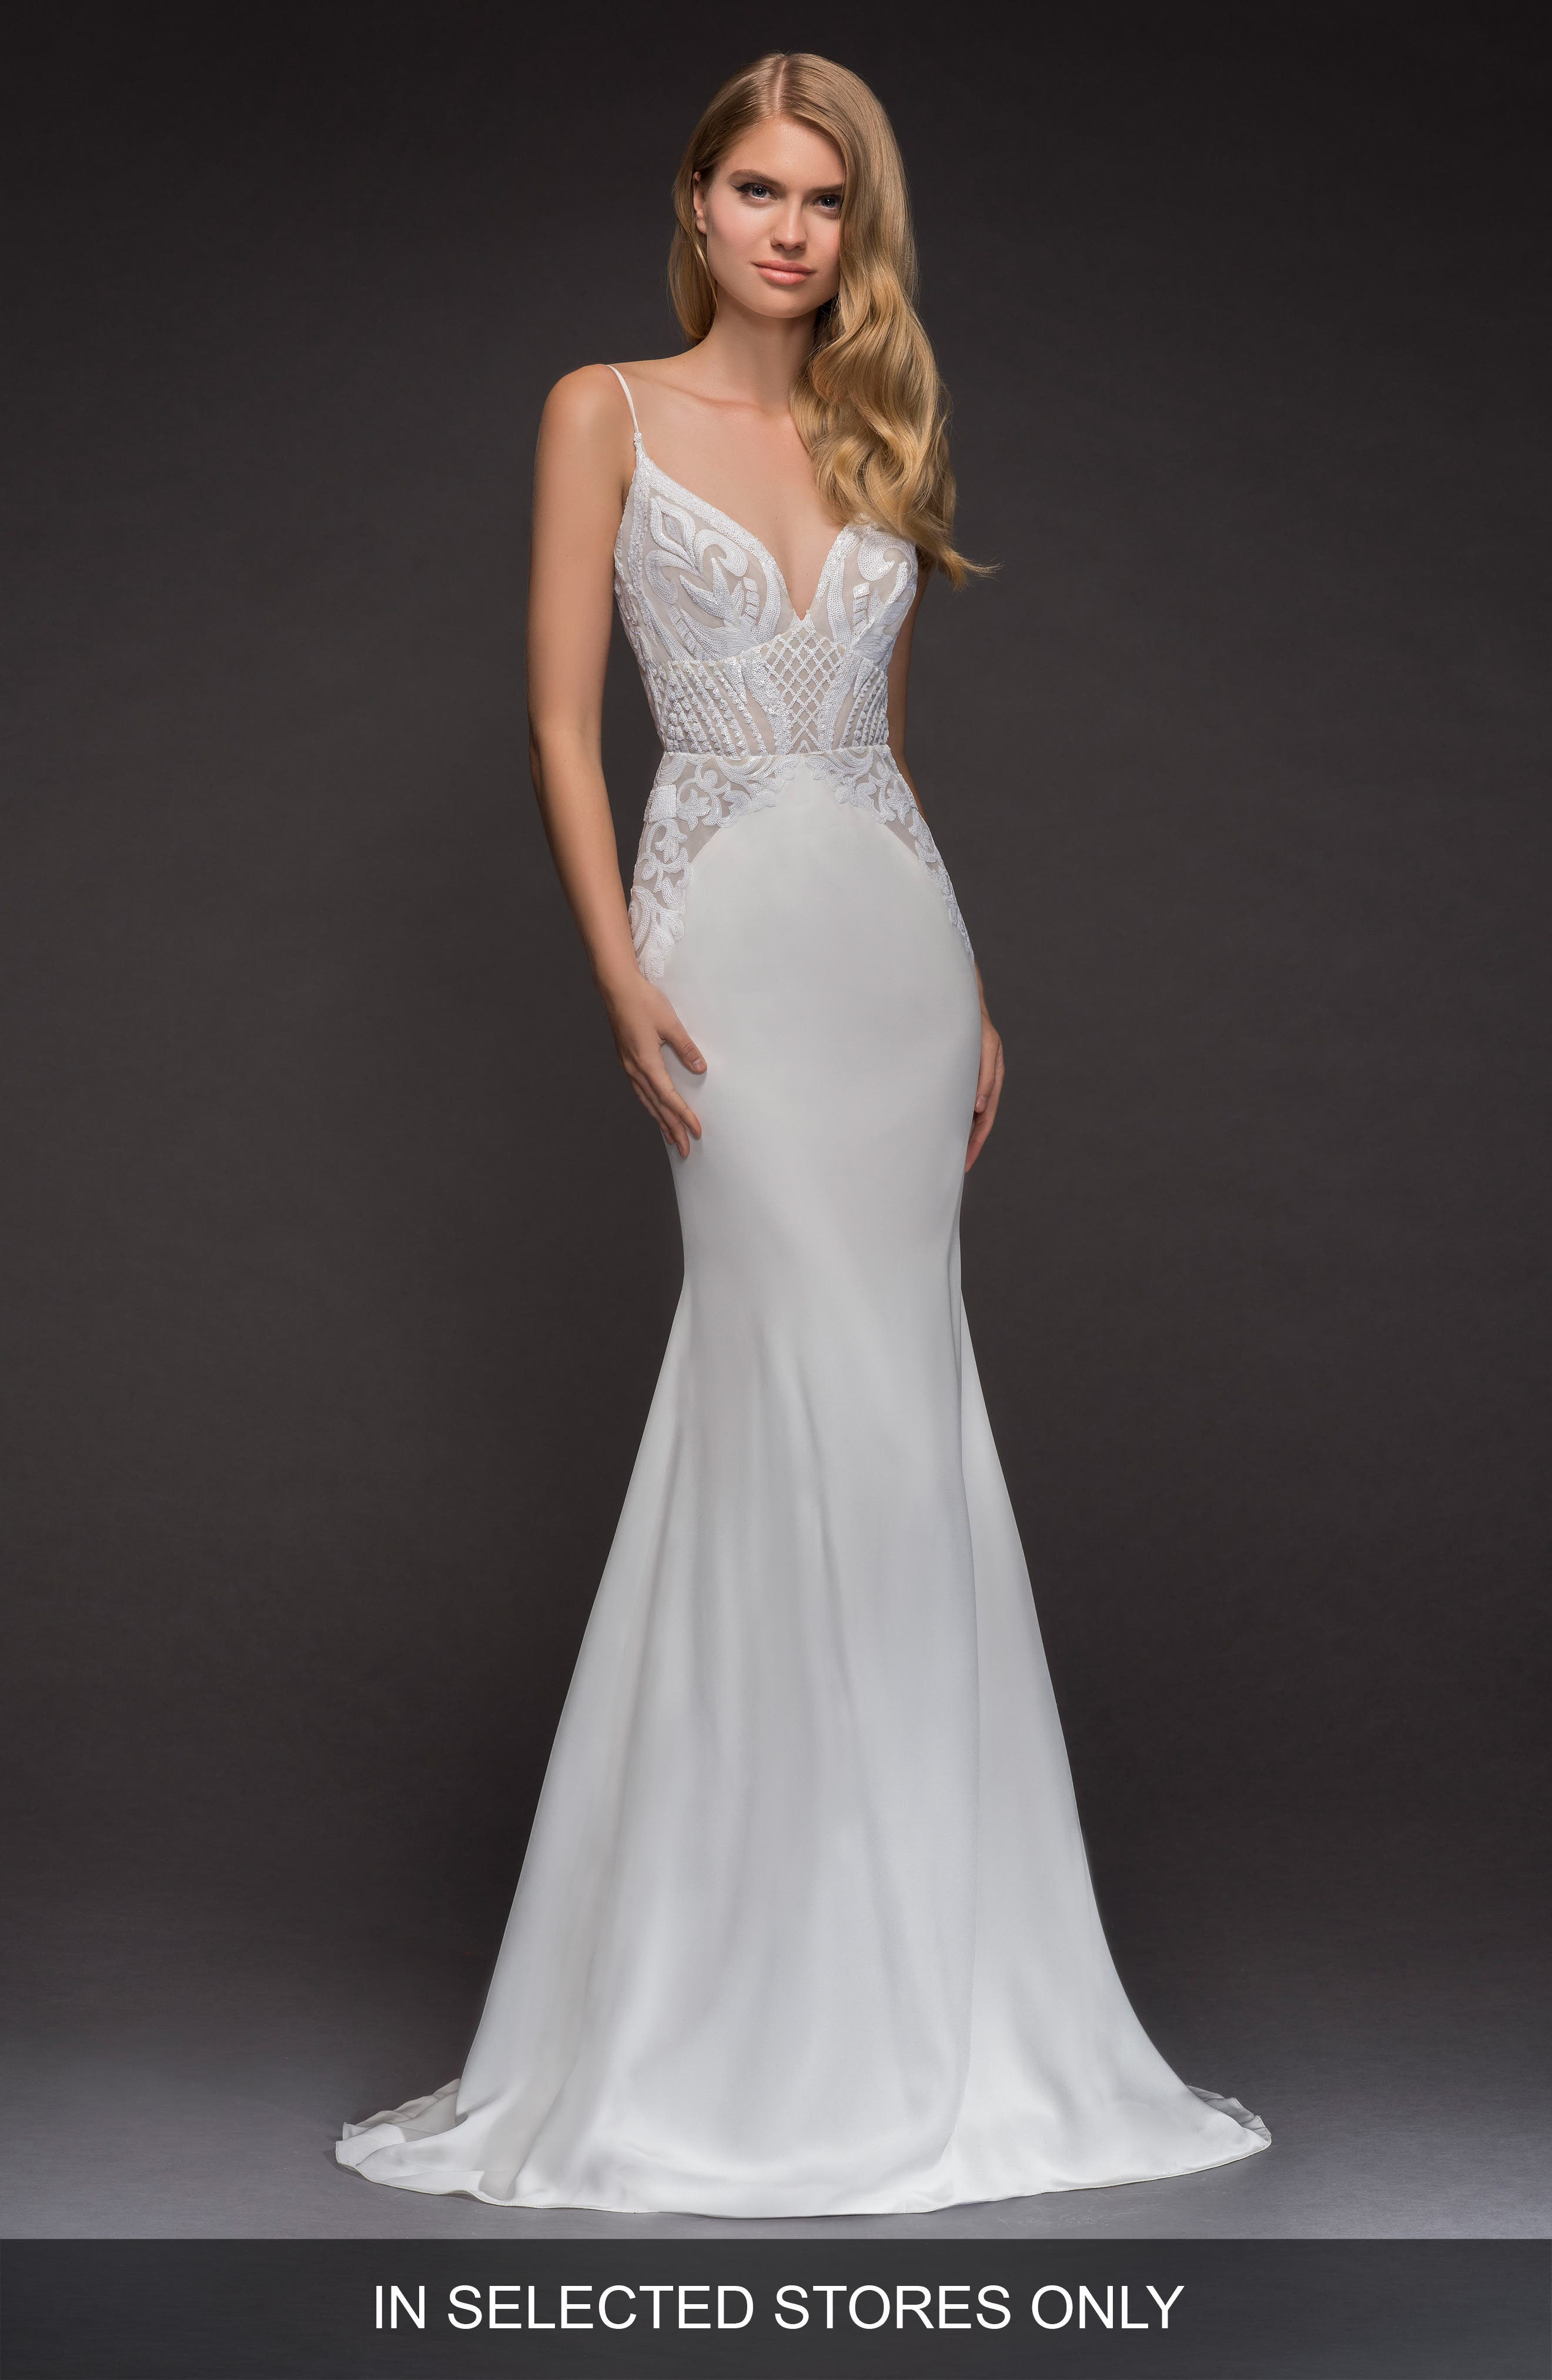 Alternate Image 1 Selected - Blush by Hayley Paige Xenia Beaded Crepe Mermaid Gown